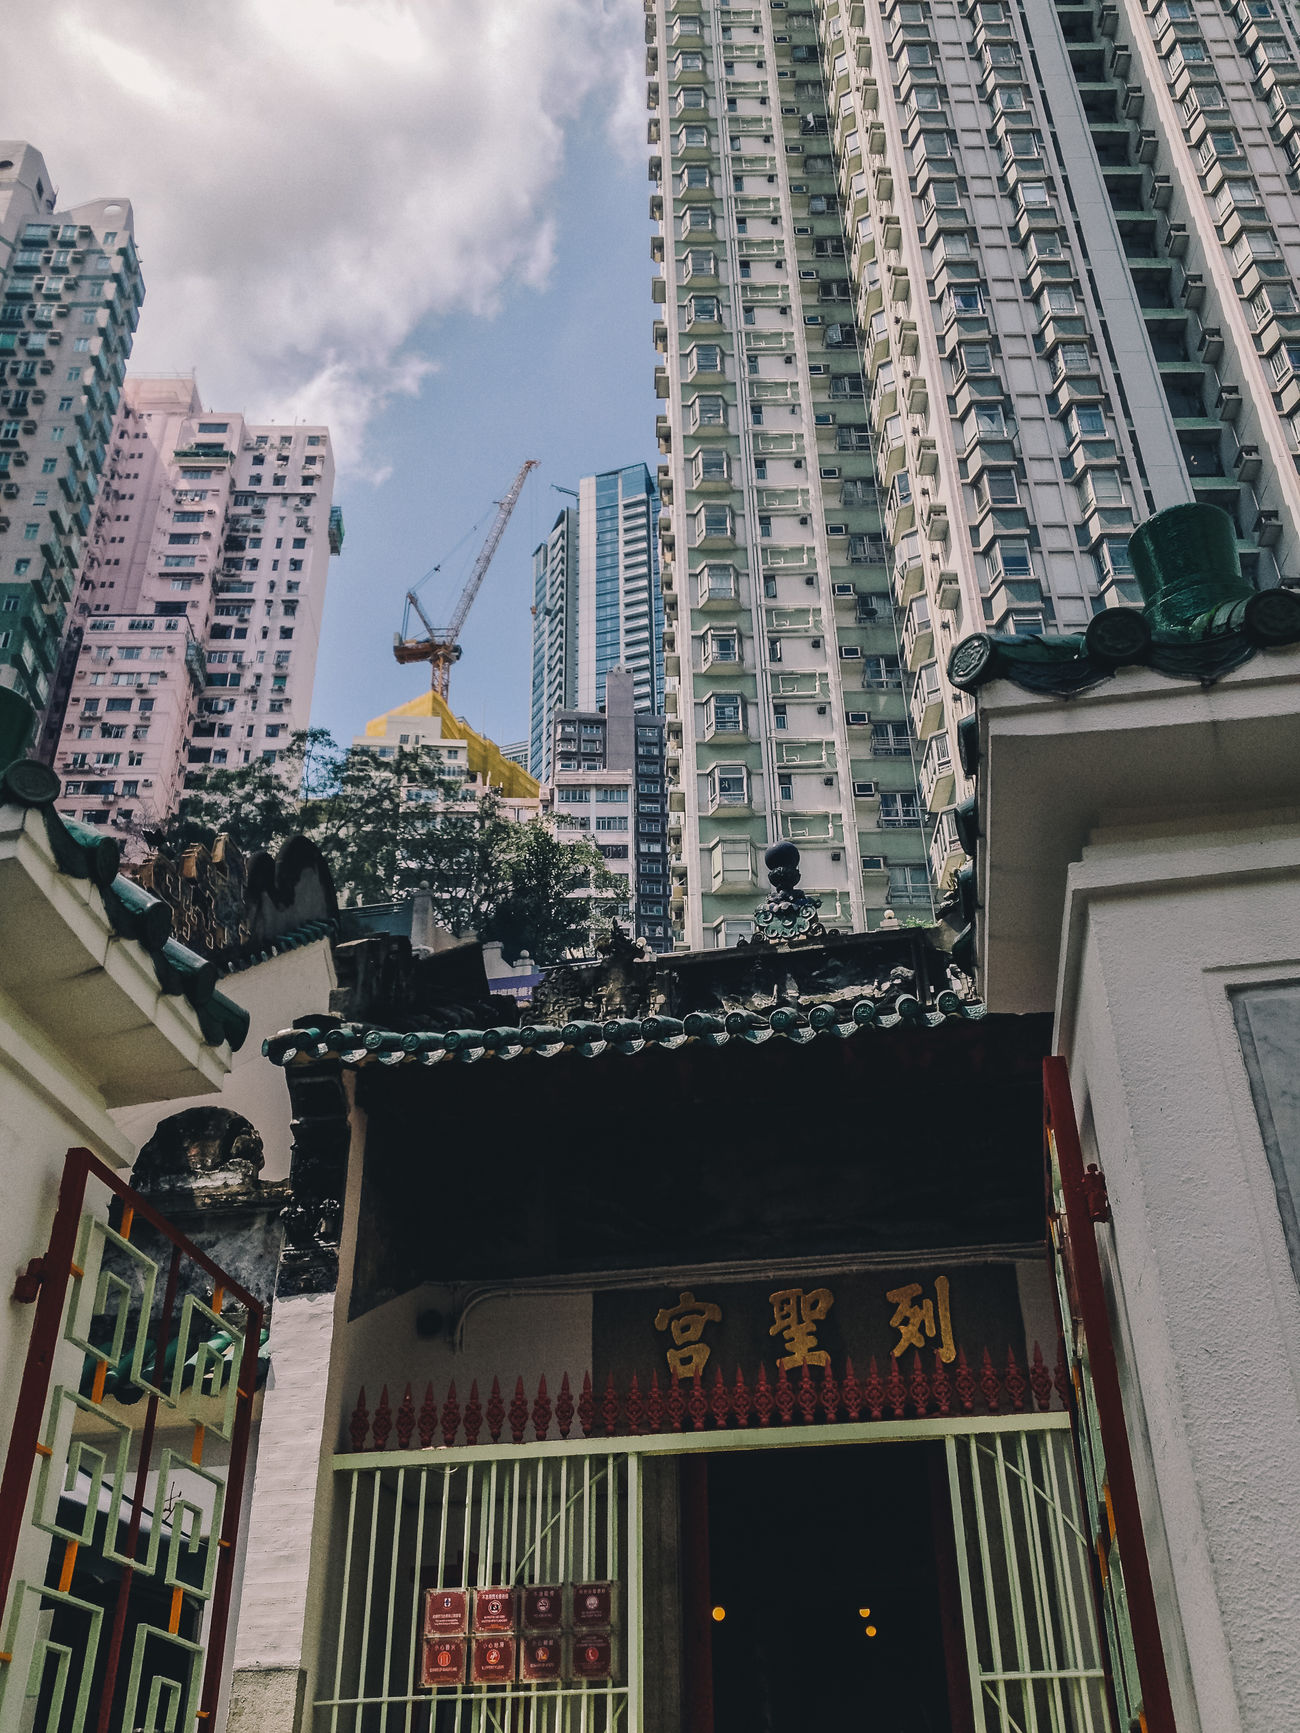 Manmo Temple and Highrises, Hong Kong, May 2013. Apartment Architecture Balance Buddhist Buddhist Temple City City Life Cloud - Sky Construction Density Highrise IPhoneography Low Angle View Mobile Photography Modern Old And New Residential Building Residential Structure Skyscraper Travel Photography Traditional Urban Exploration Urban Geometry Showcase July Travel